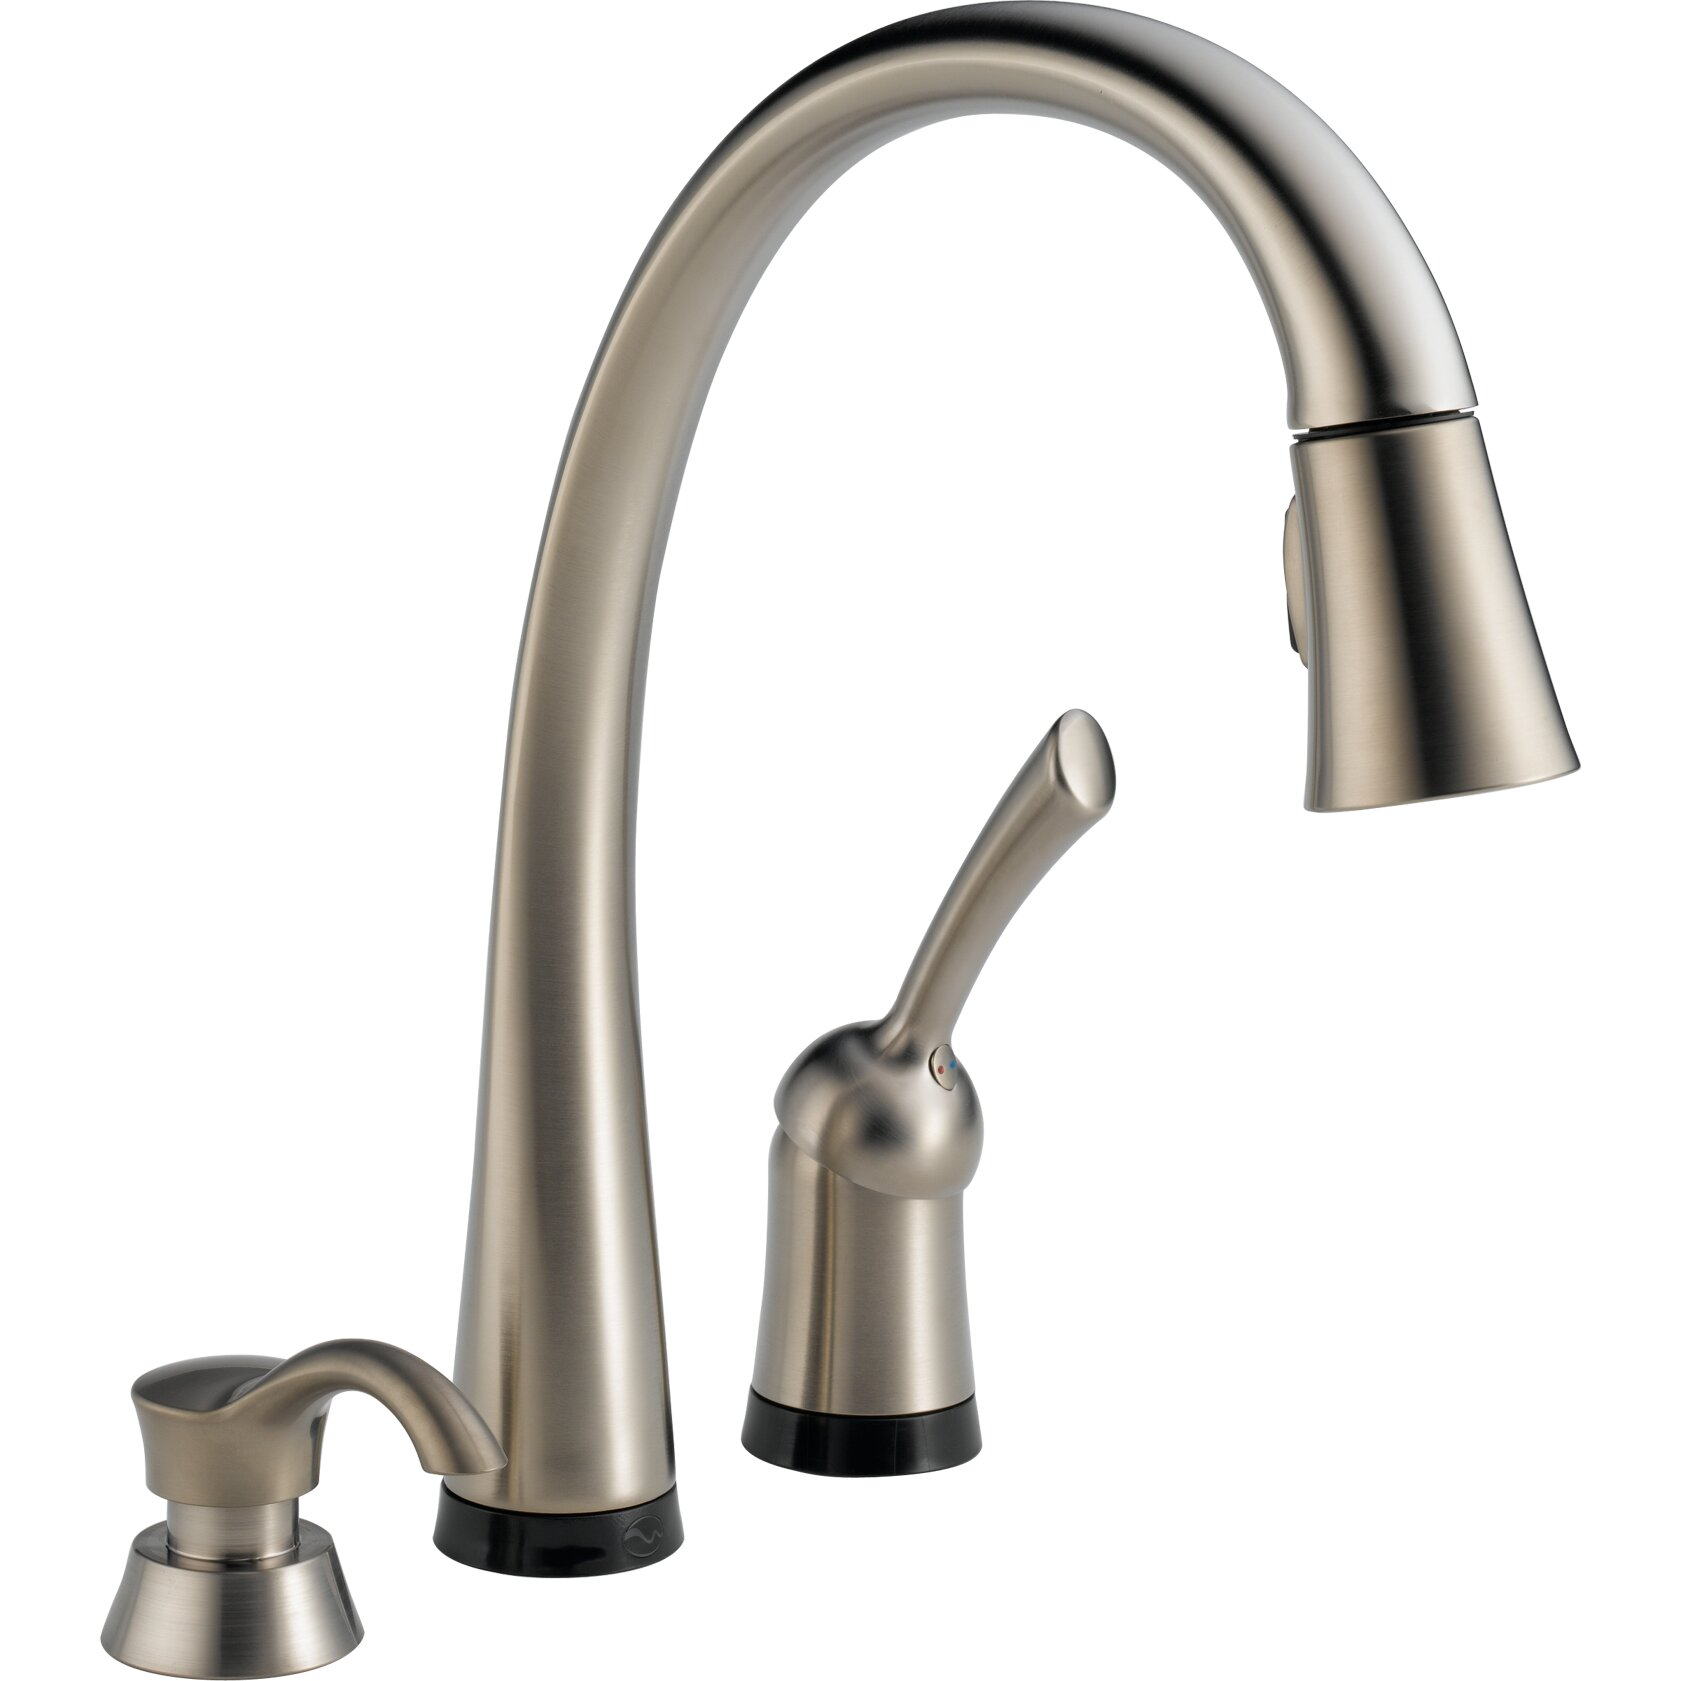 How To Fix Leaky Bathtub Faucet Single Handle Tubethevote